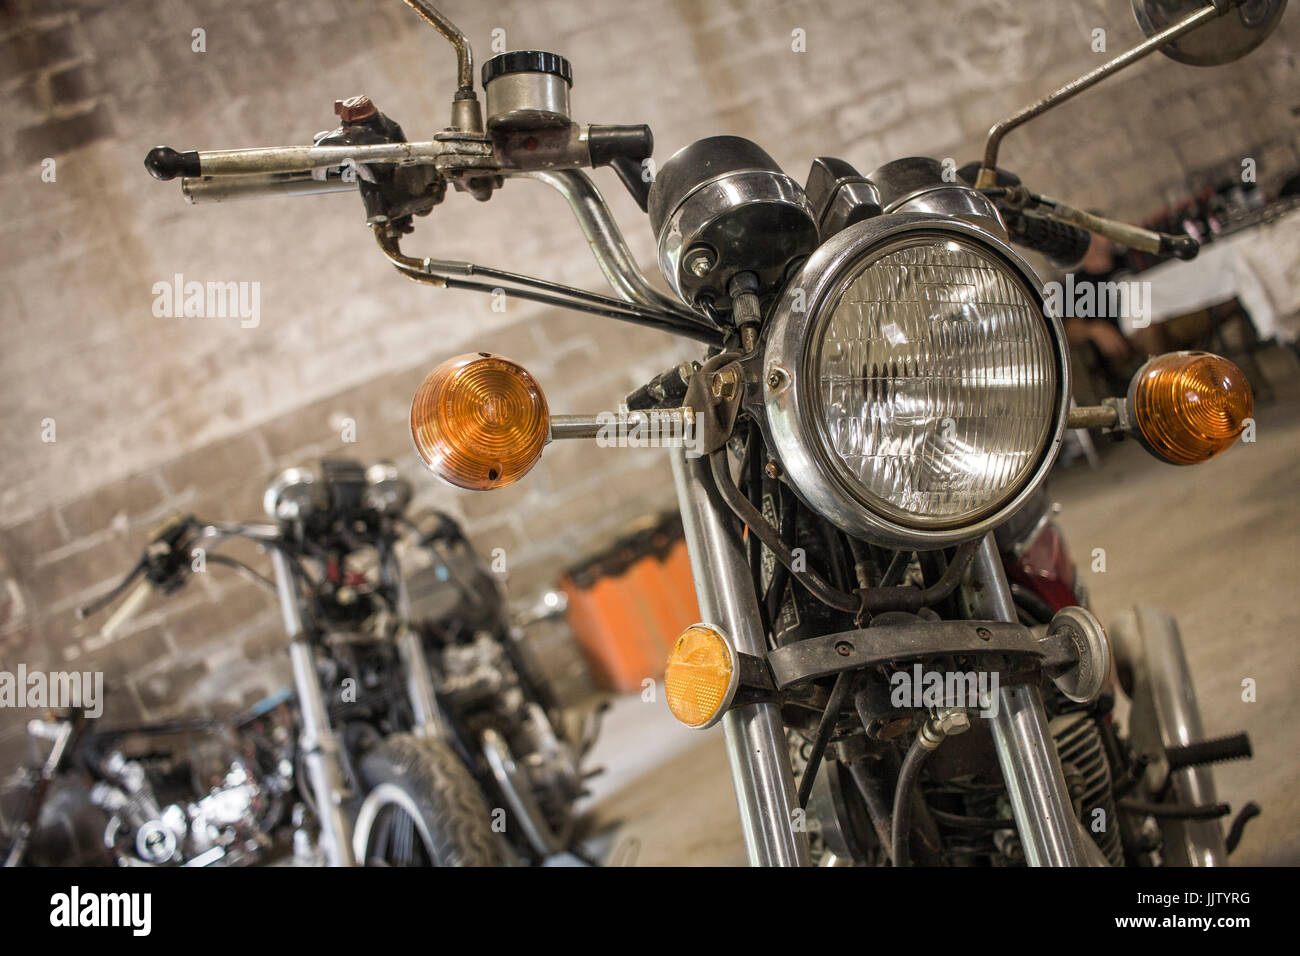 Vintage Bike Show at The Yard in Manlius - Stock Image